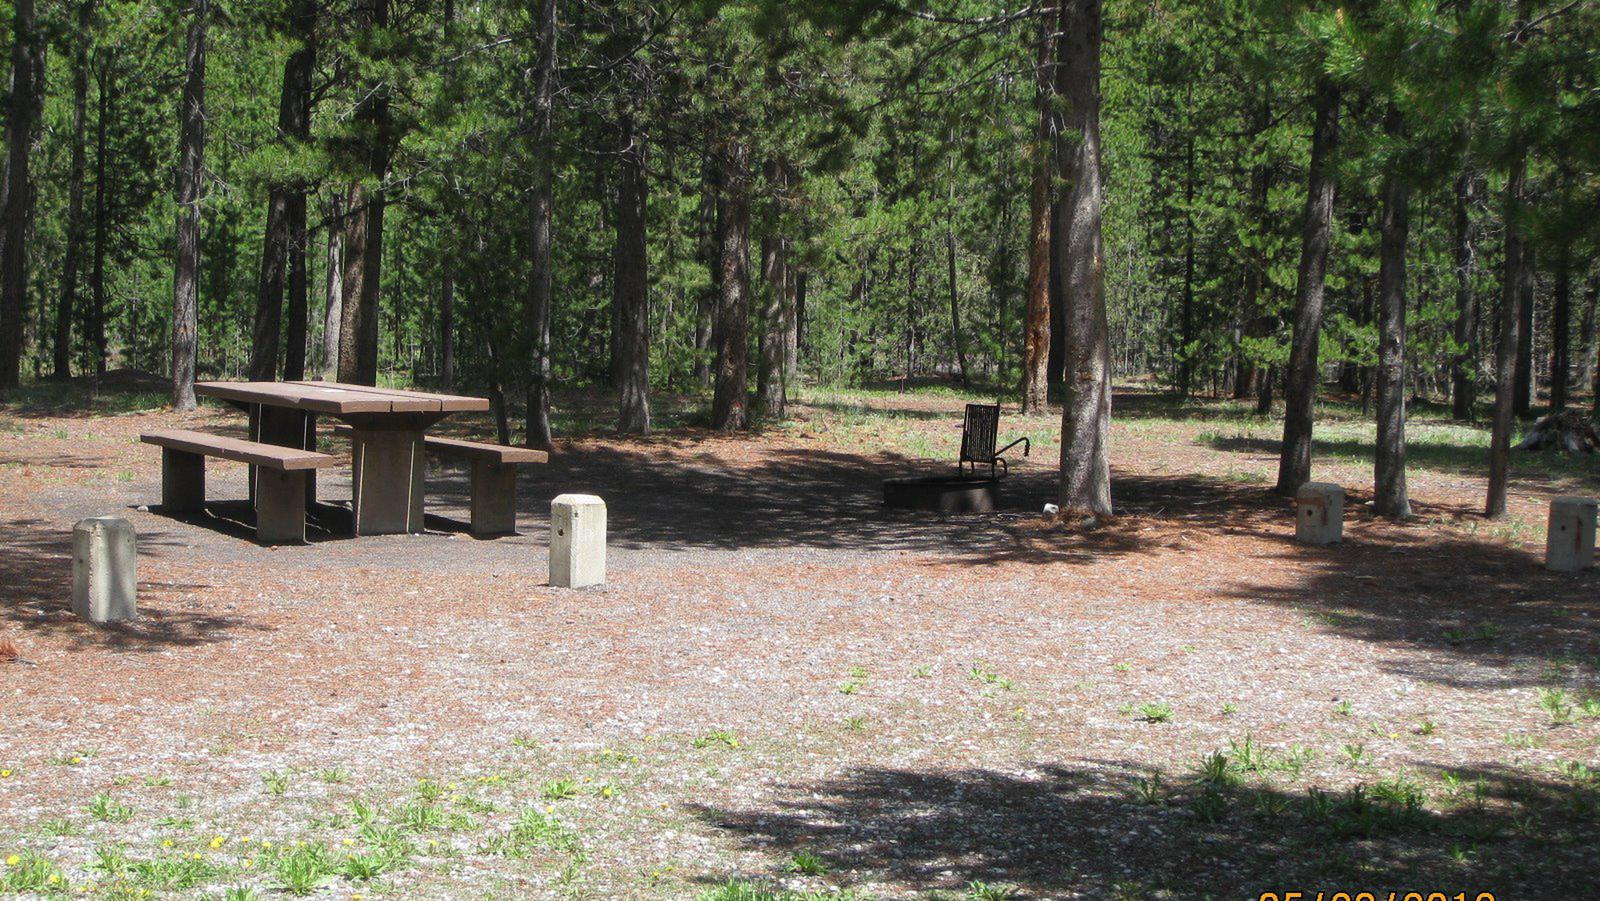 Site B20, surrounded by pine trees, picnic table & fire ringSite B20